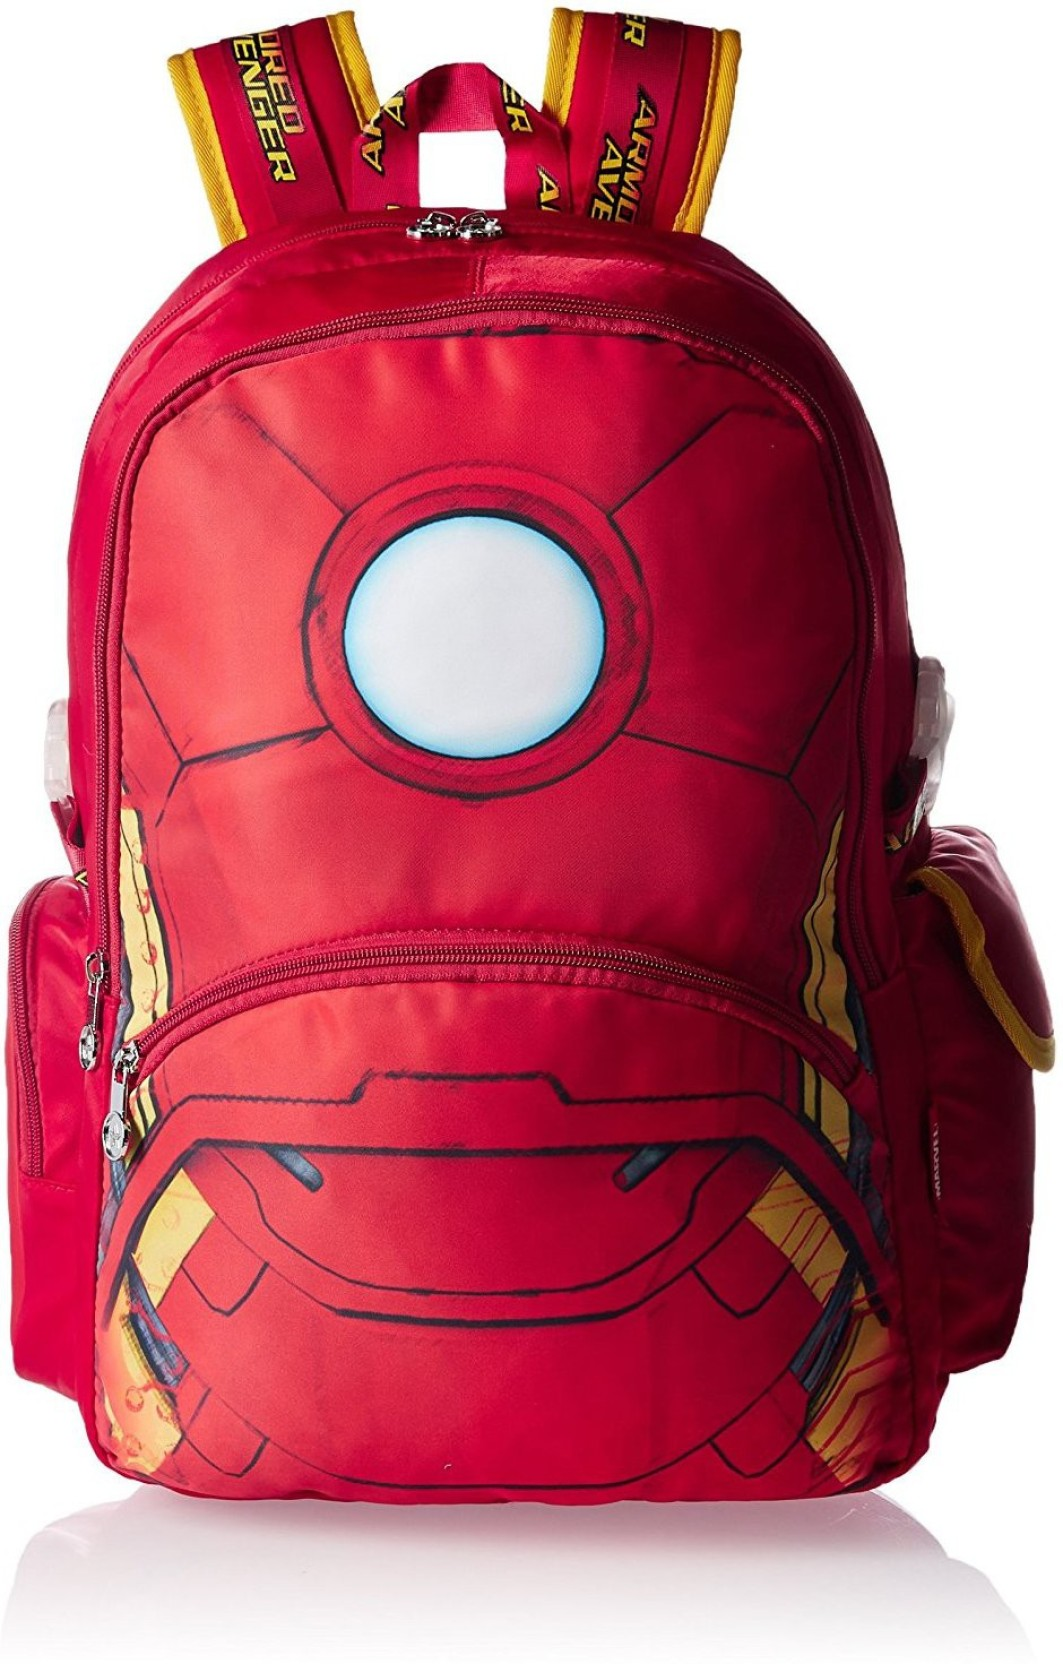 Marvel Iron Man Red School Bag 19 inch Backpack (Red d7b34c366af2f